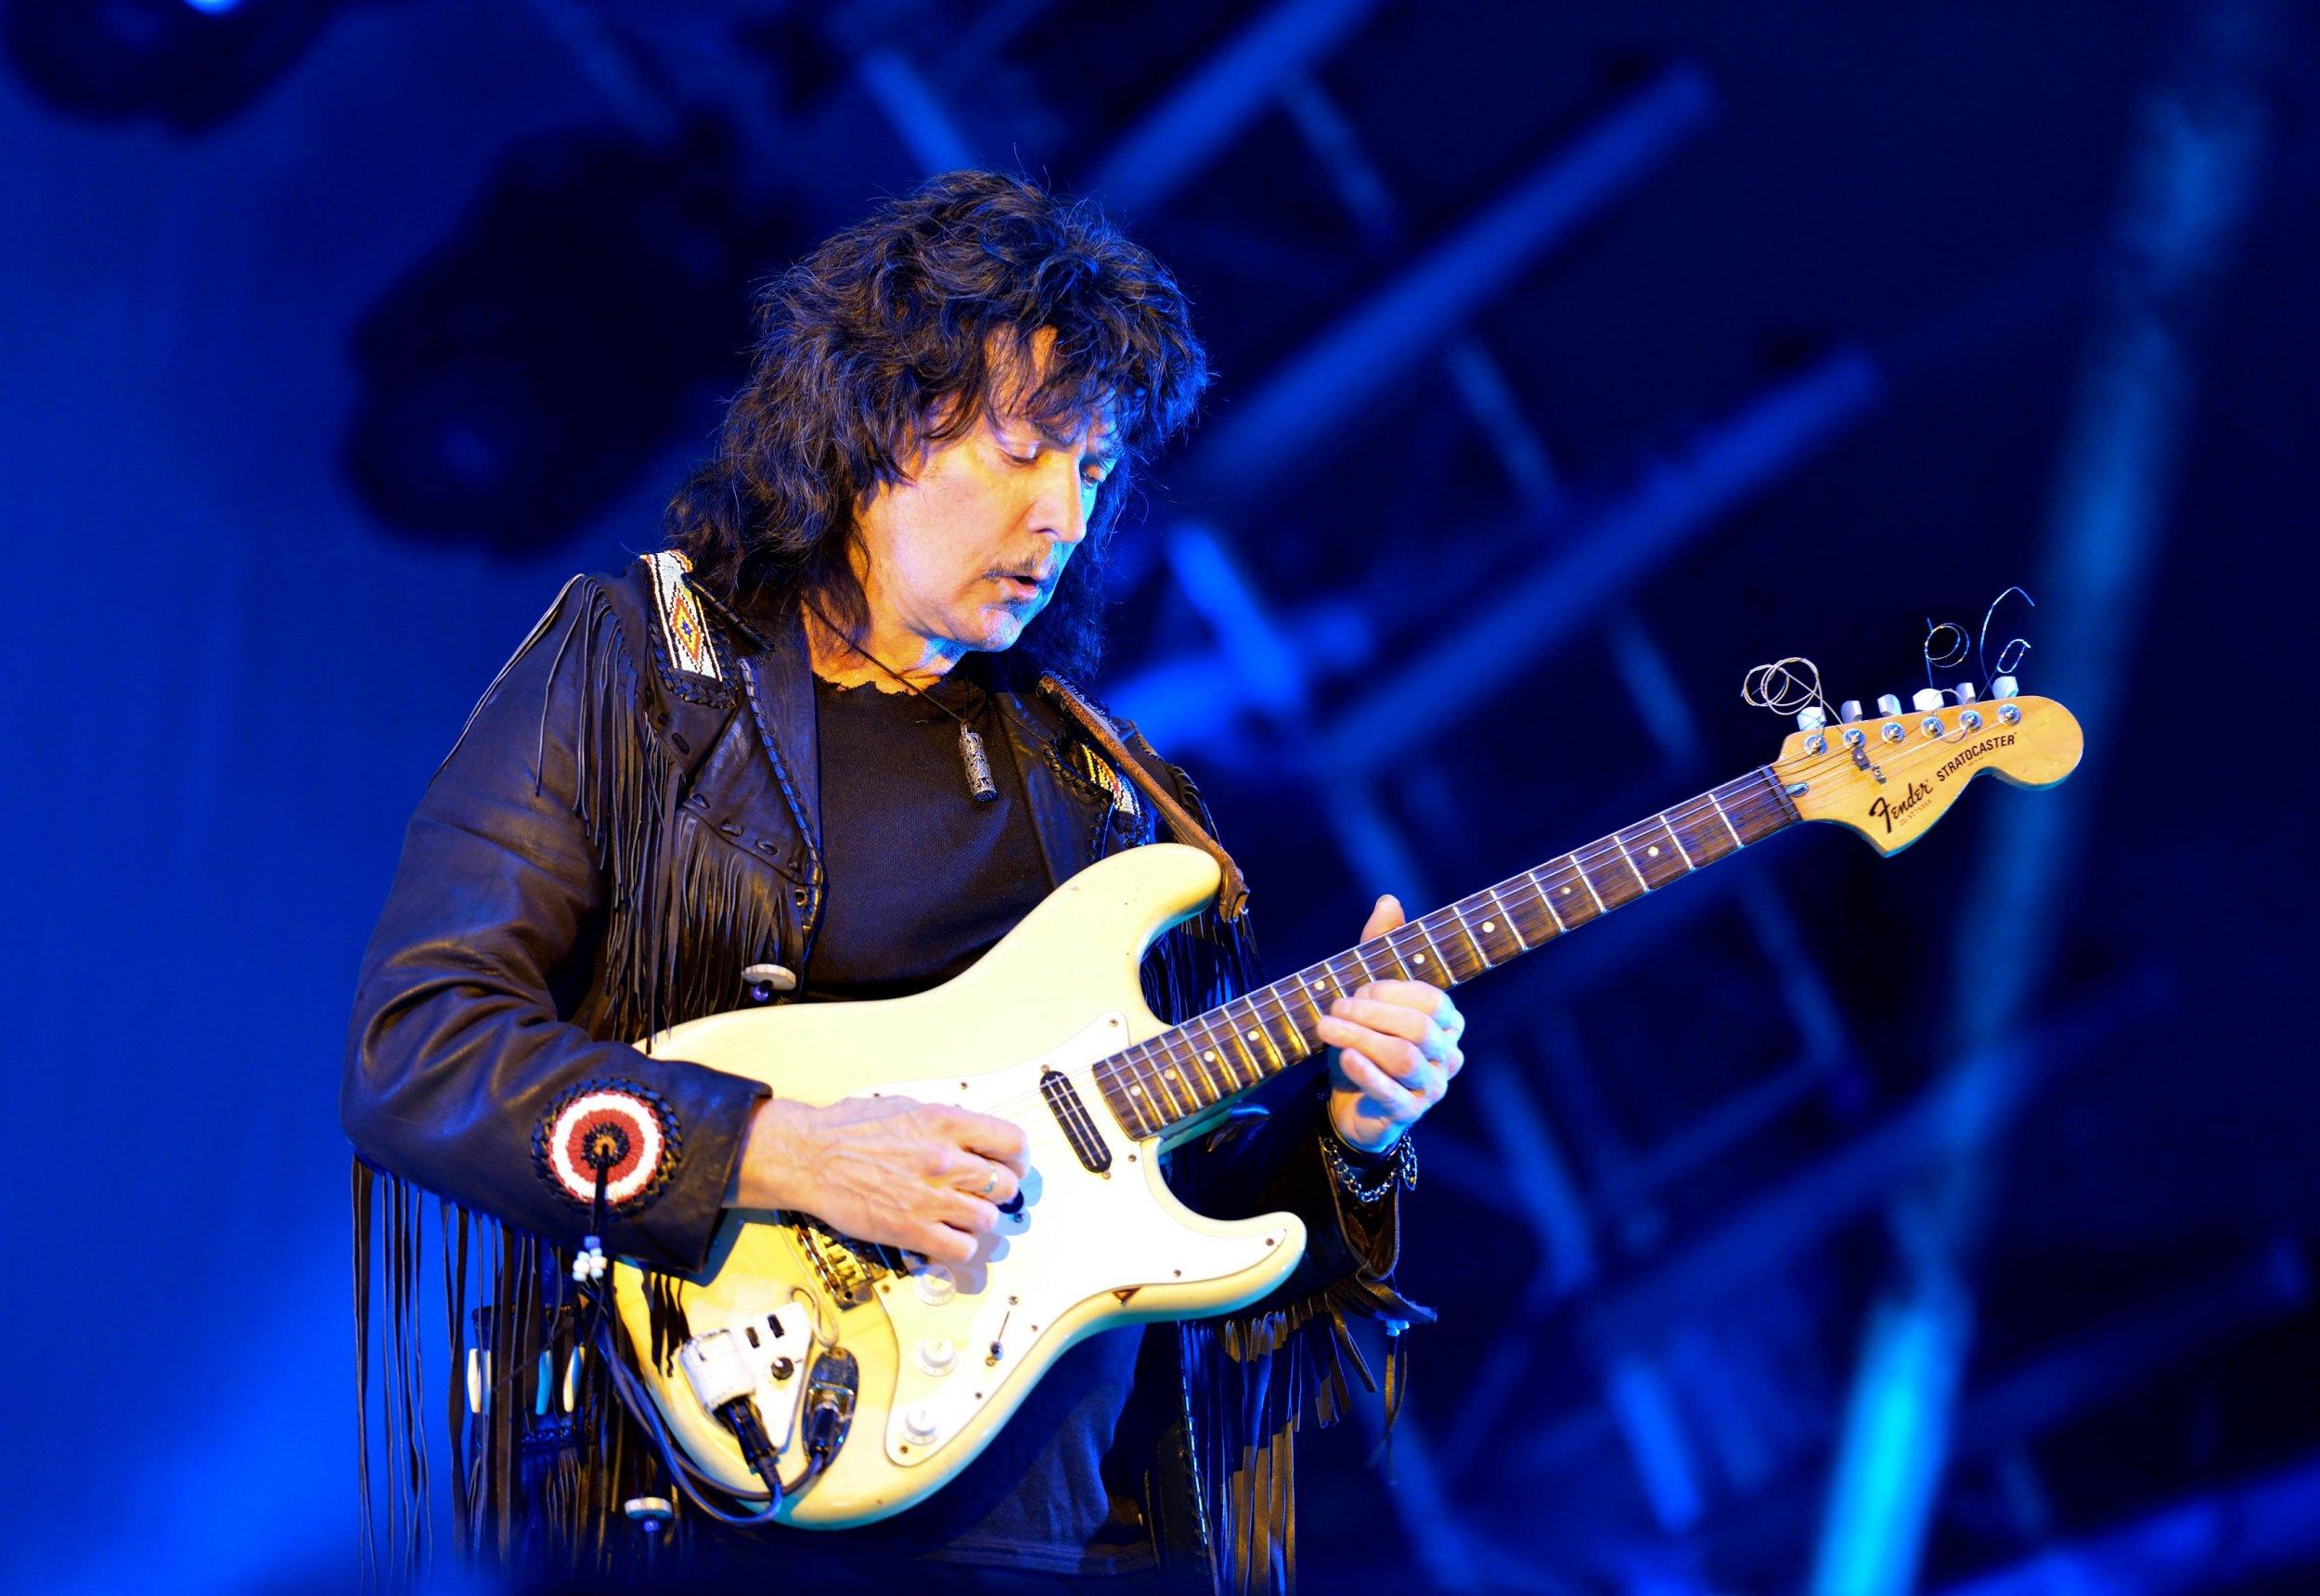 richie blackmore ego deep purple separation groupe